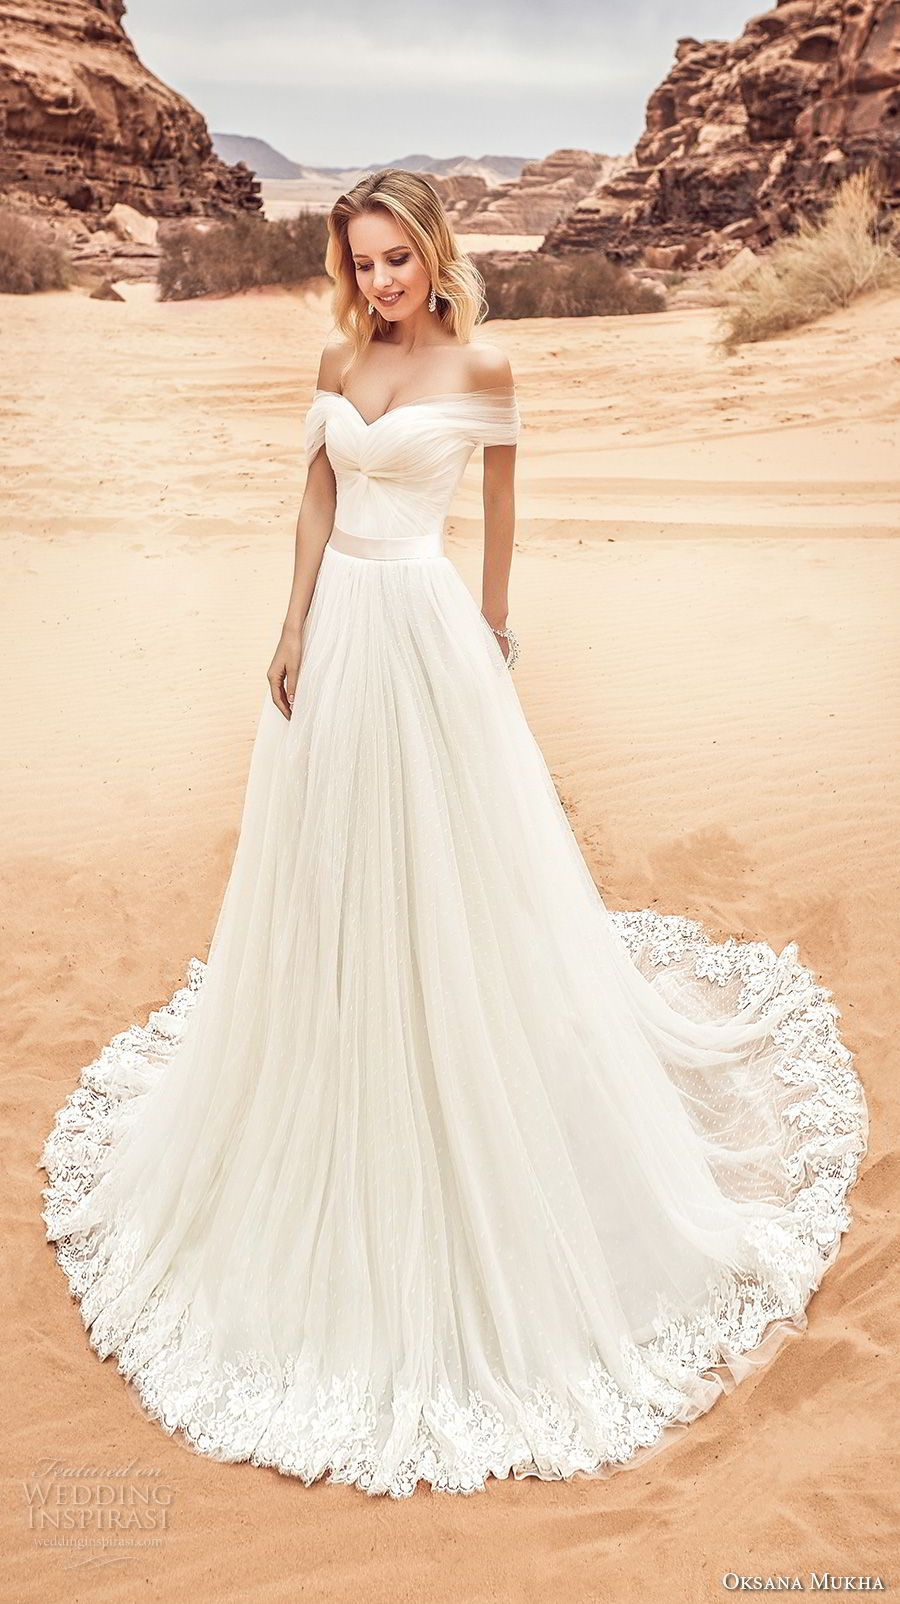 Oksana mukha wedding dresses chapel train romantic and